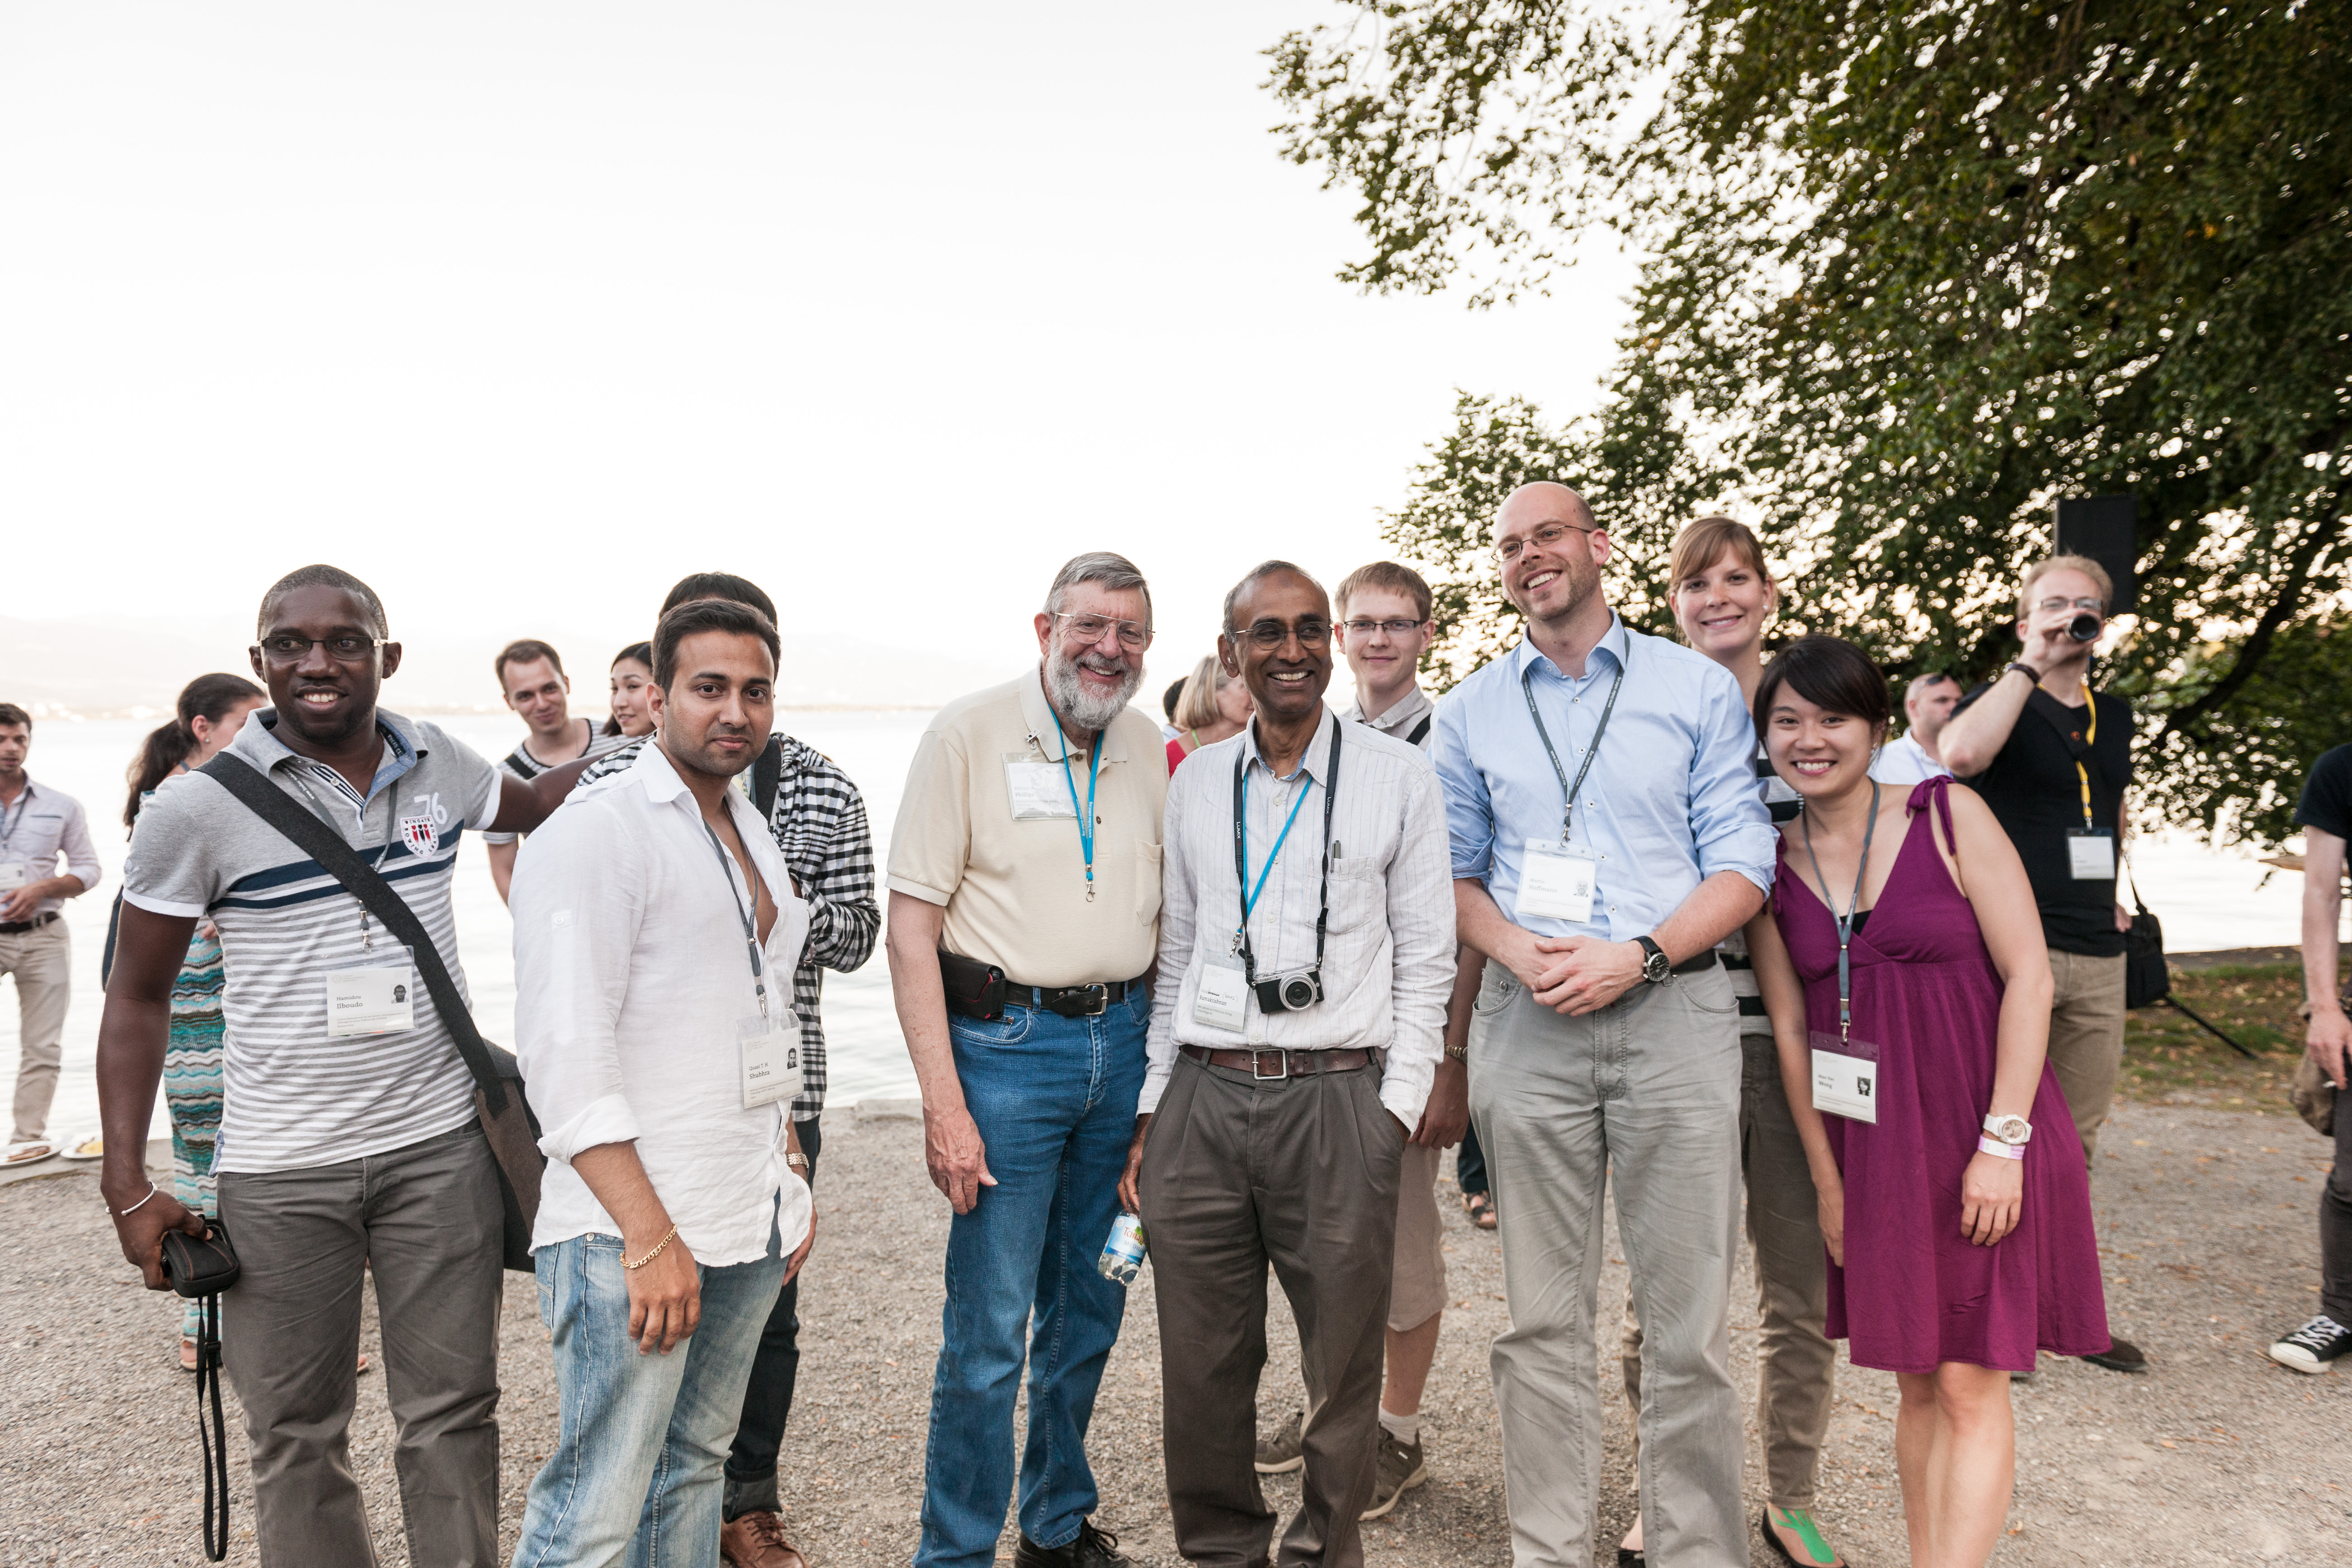 65th Lindau Nobel Laureate Meeting, Lindau, Germany, Picture/Credit: Adrian Schröder/Lindau Nobel Laureate Meetings, 30 June 2015 Grill & Chill Evening at Toskana Park No Model Release. No Property Release. Free use only in connection with media covera